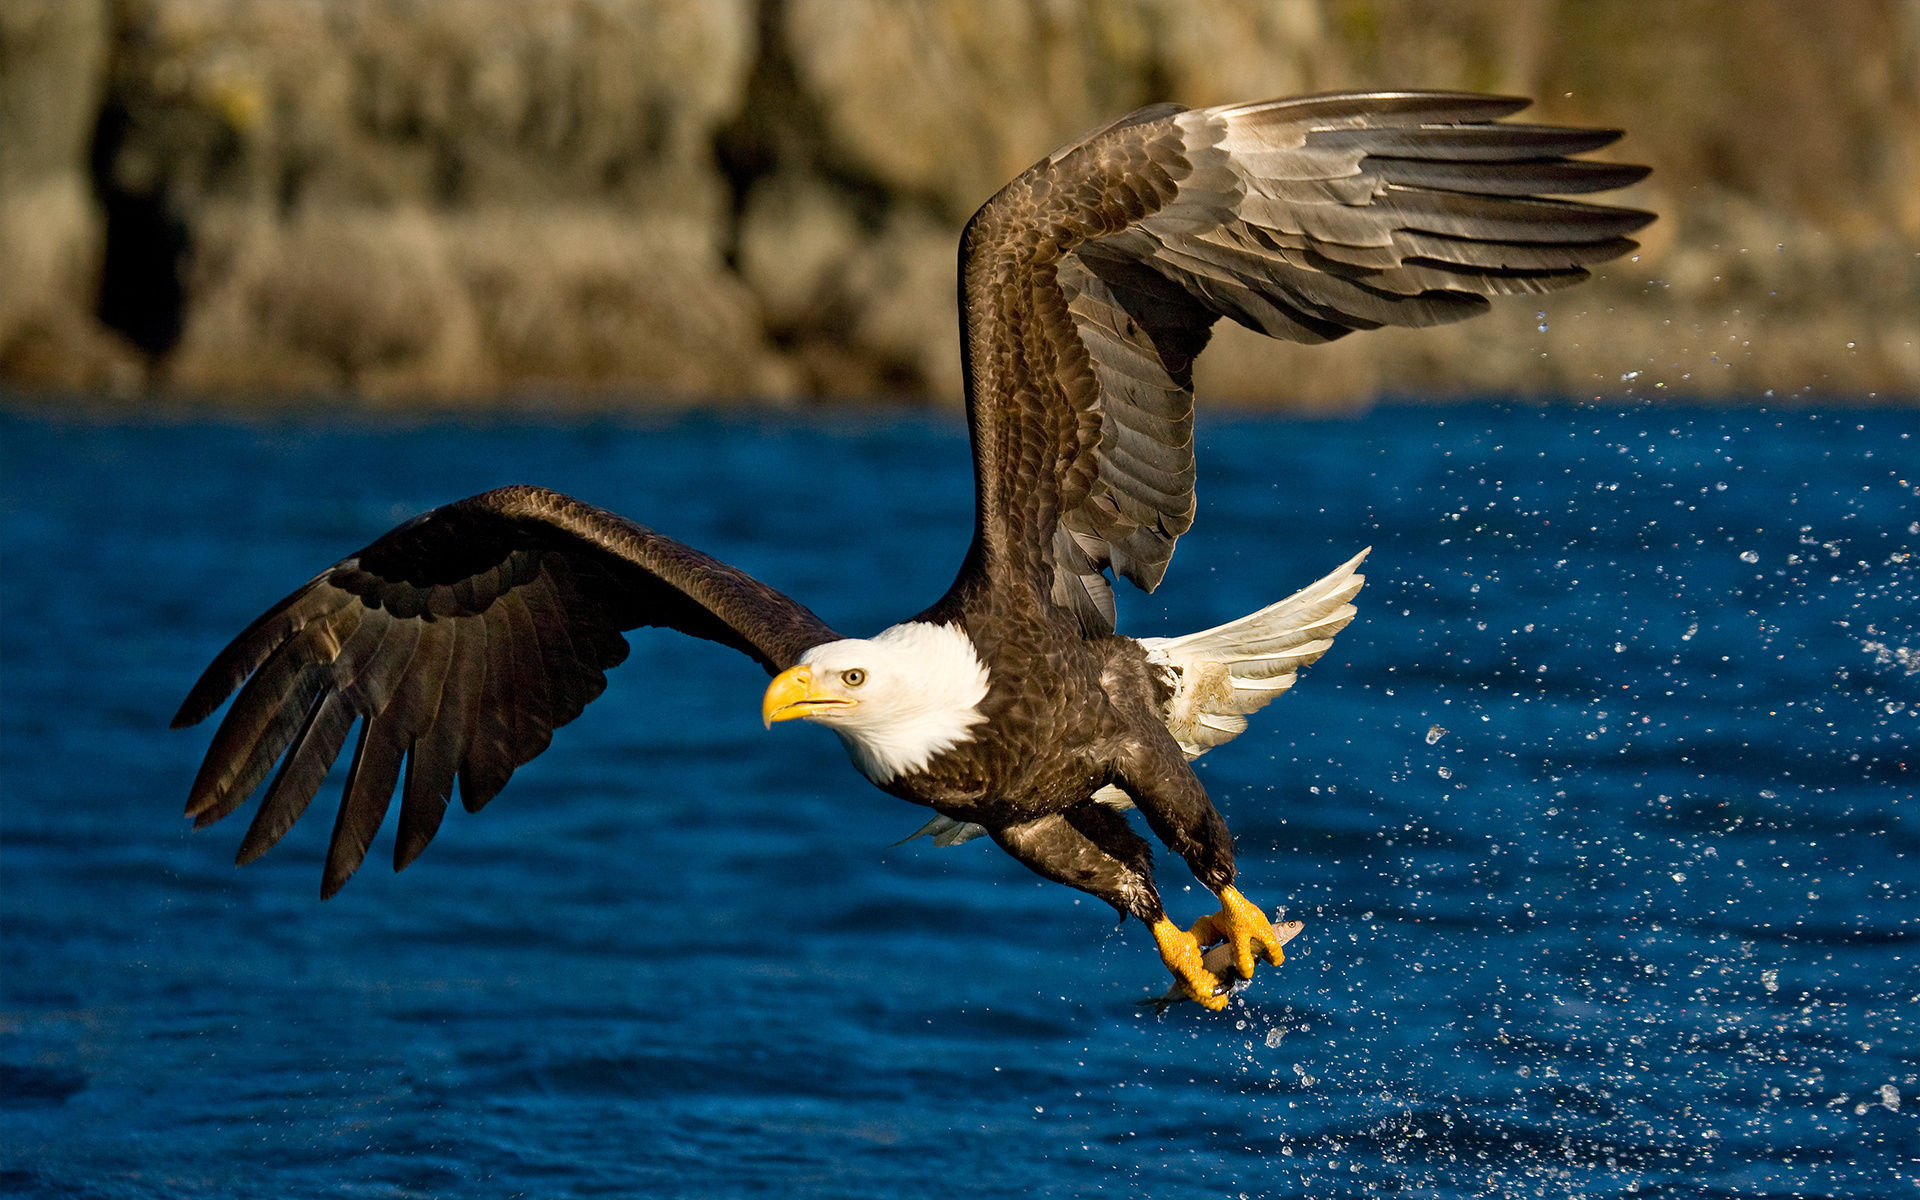 bald eagle wallpaper hd 002